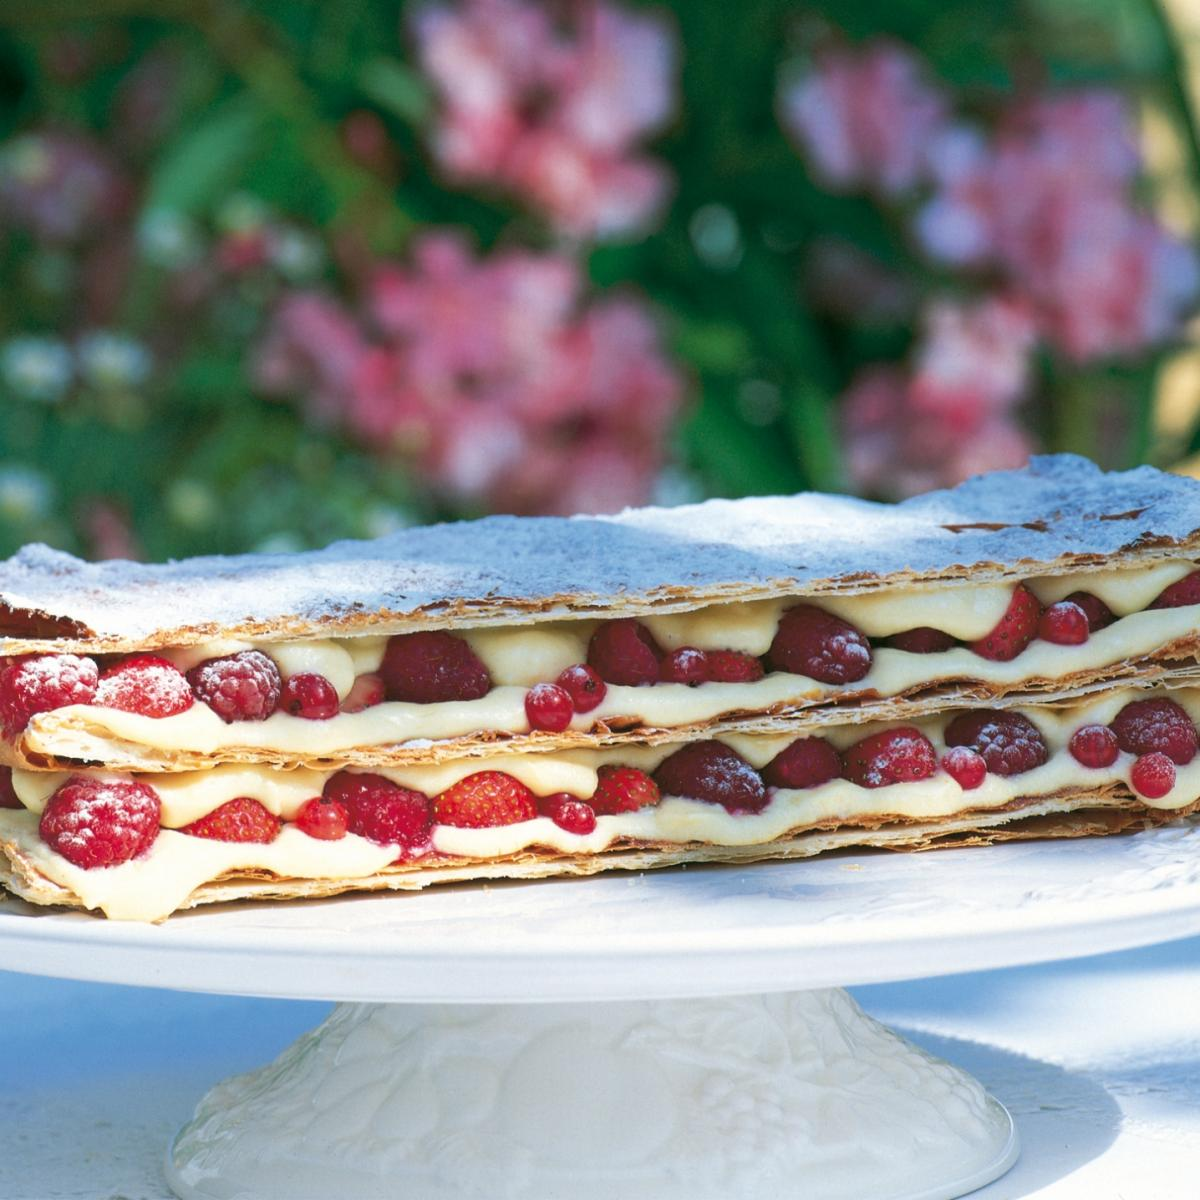 A picture of Delia's Summer Fruit Millefeuille recipe